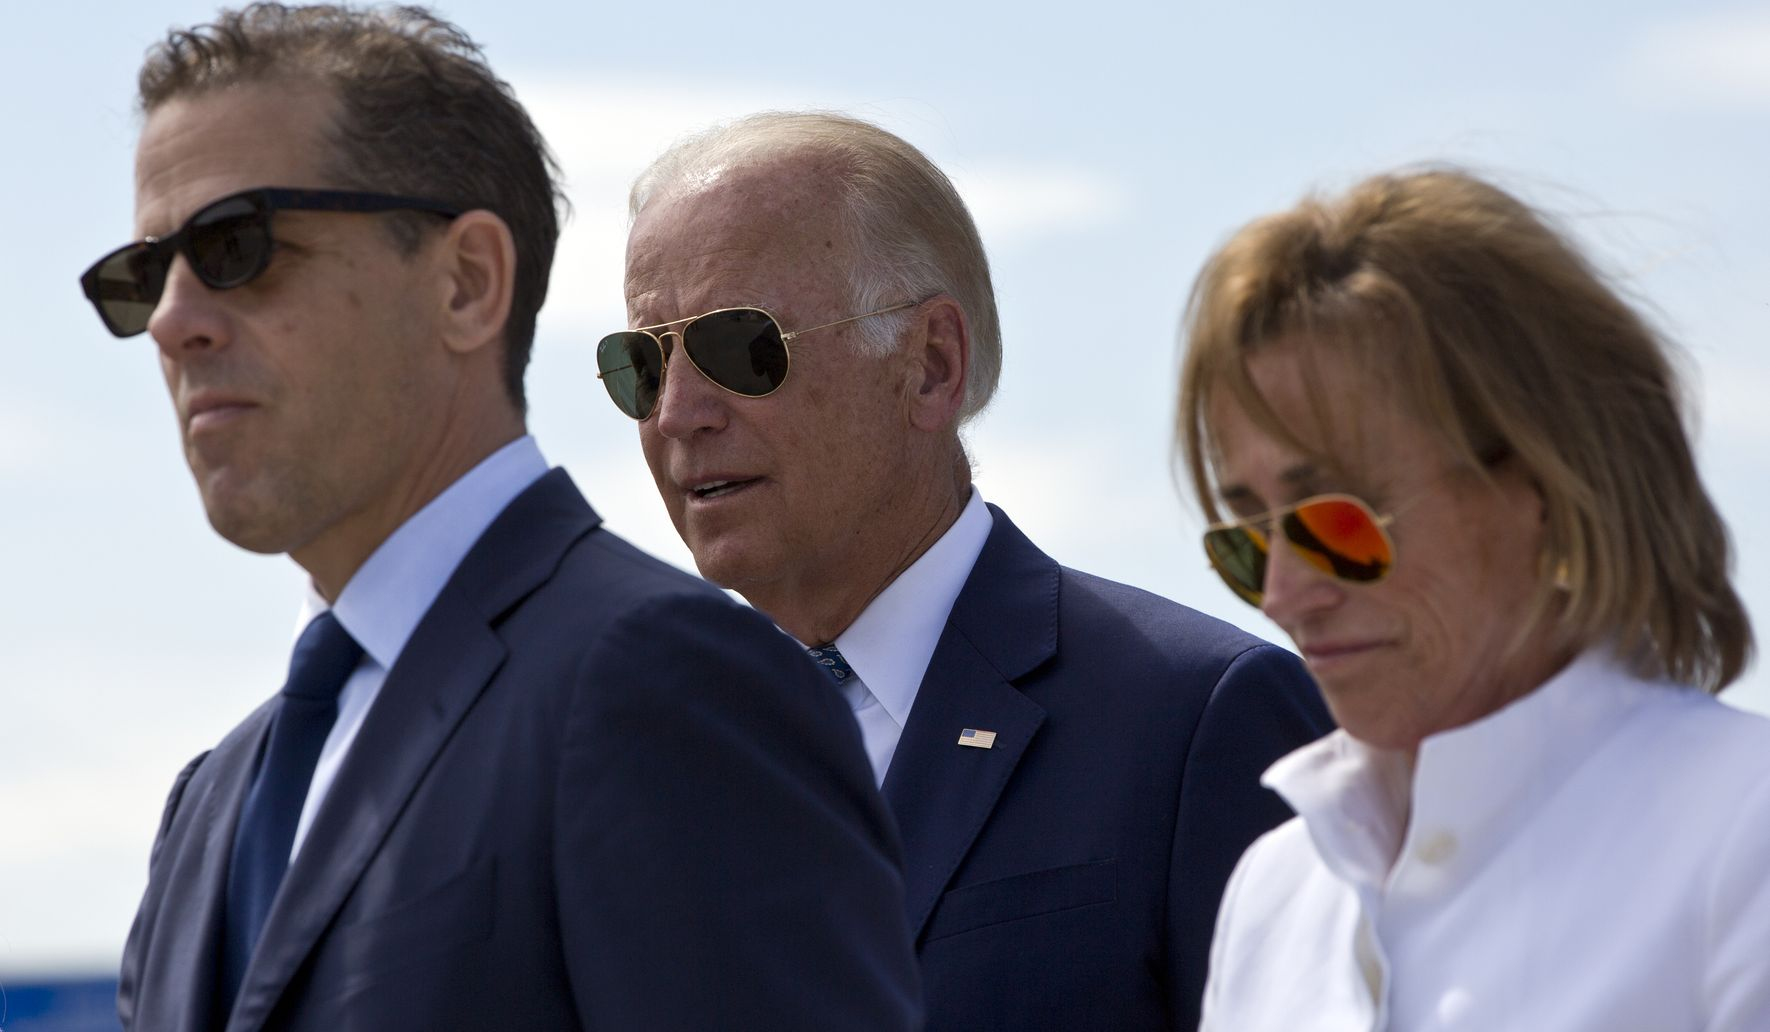 Hunter Biden attempts to squash appearances of conflict of interest with father